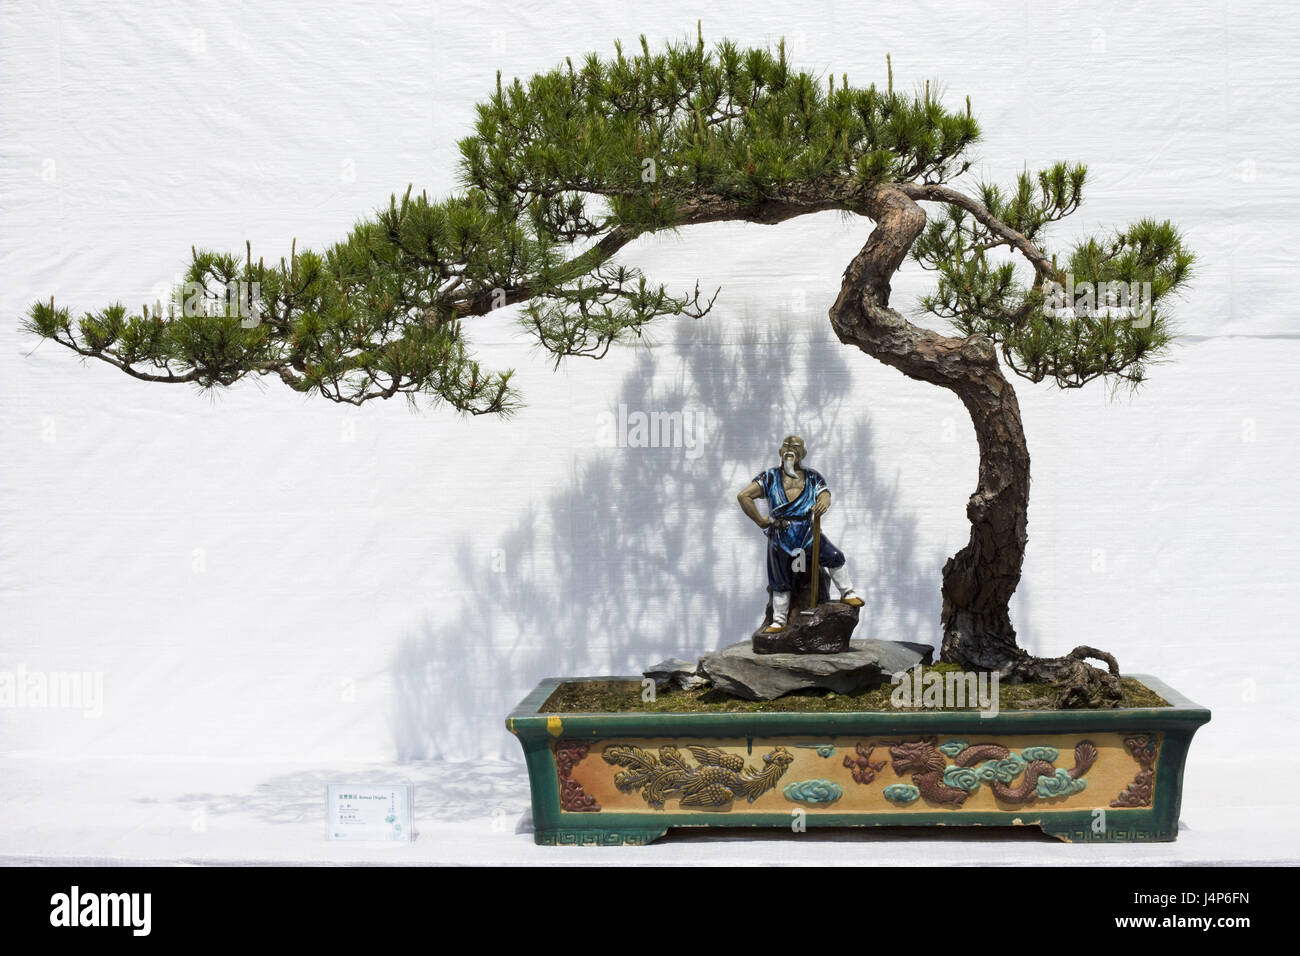 Bonsai Tree Peel Character Dwarf S Tree Tree Conifer Small Stock Photo Alamy